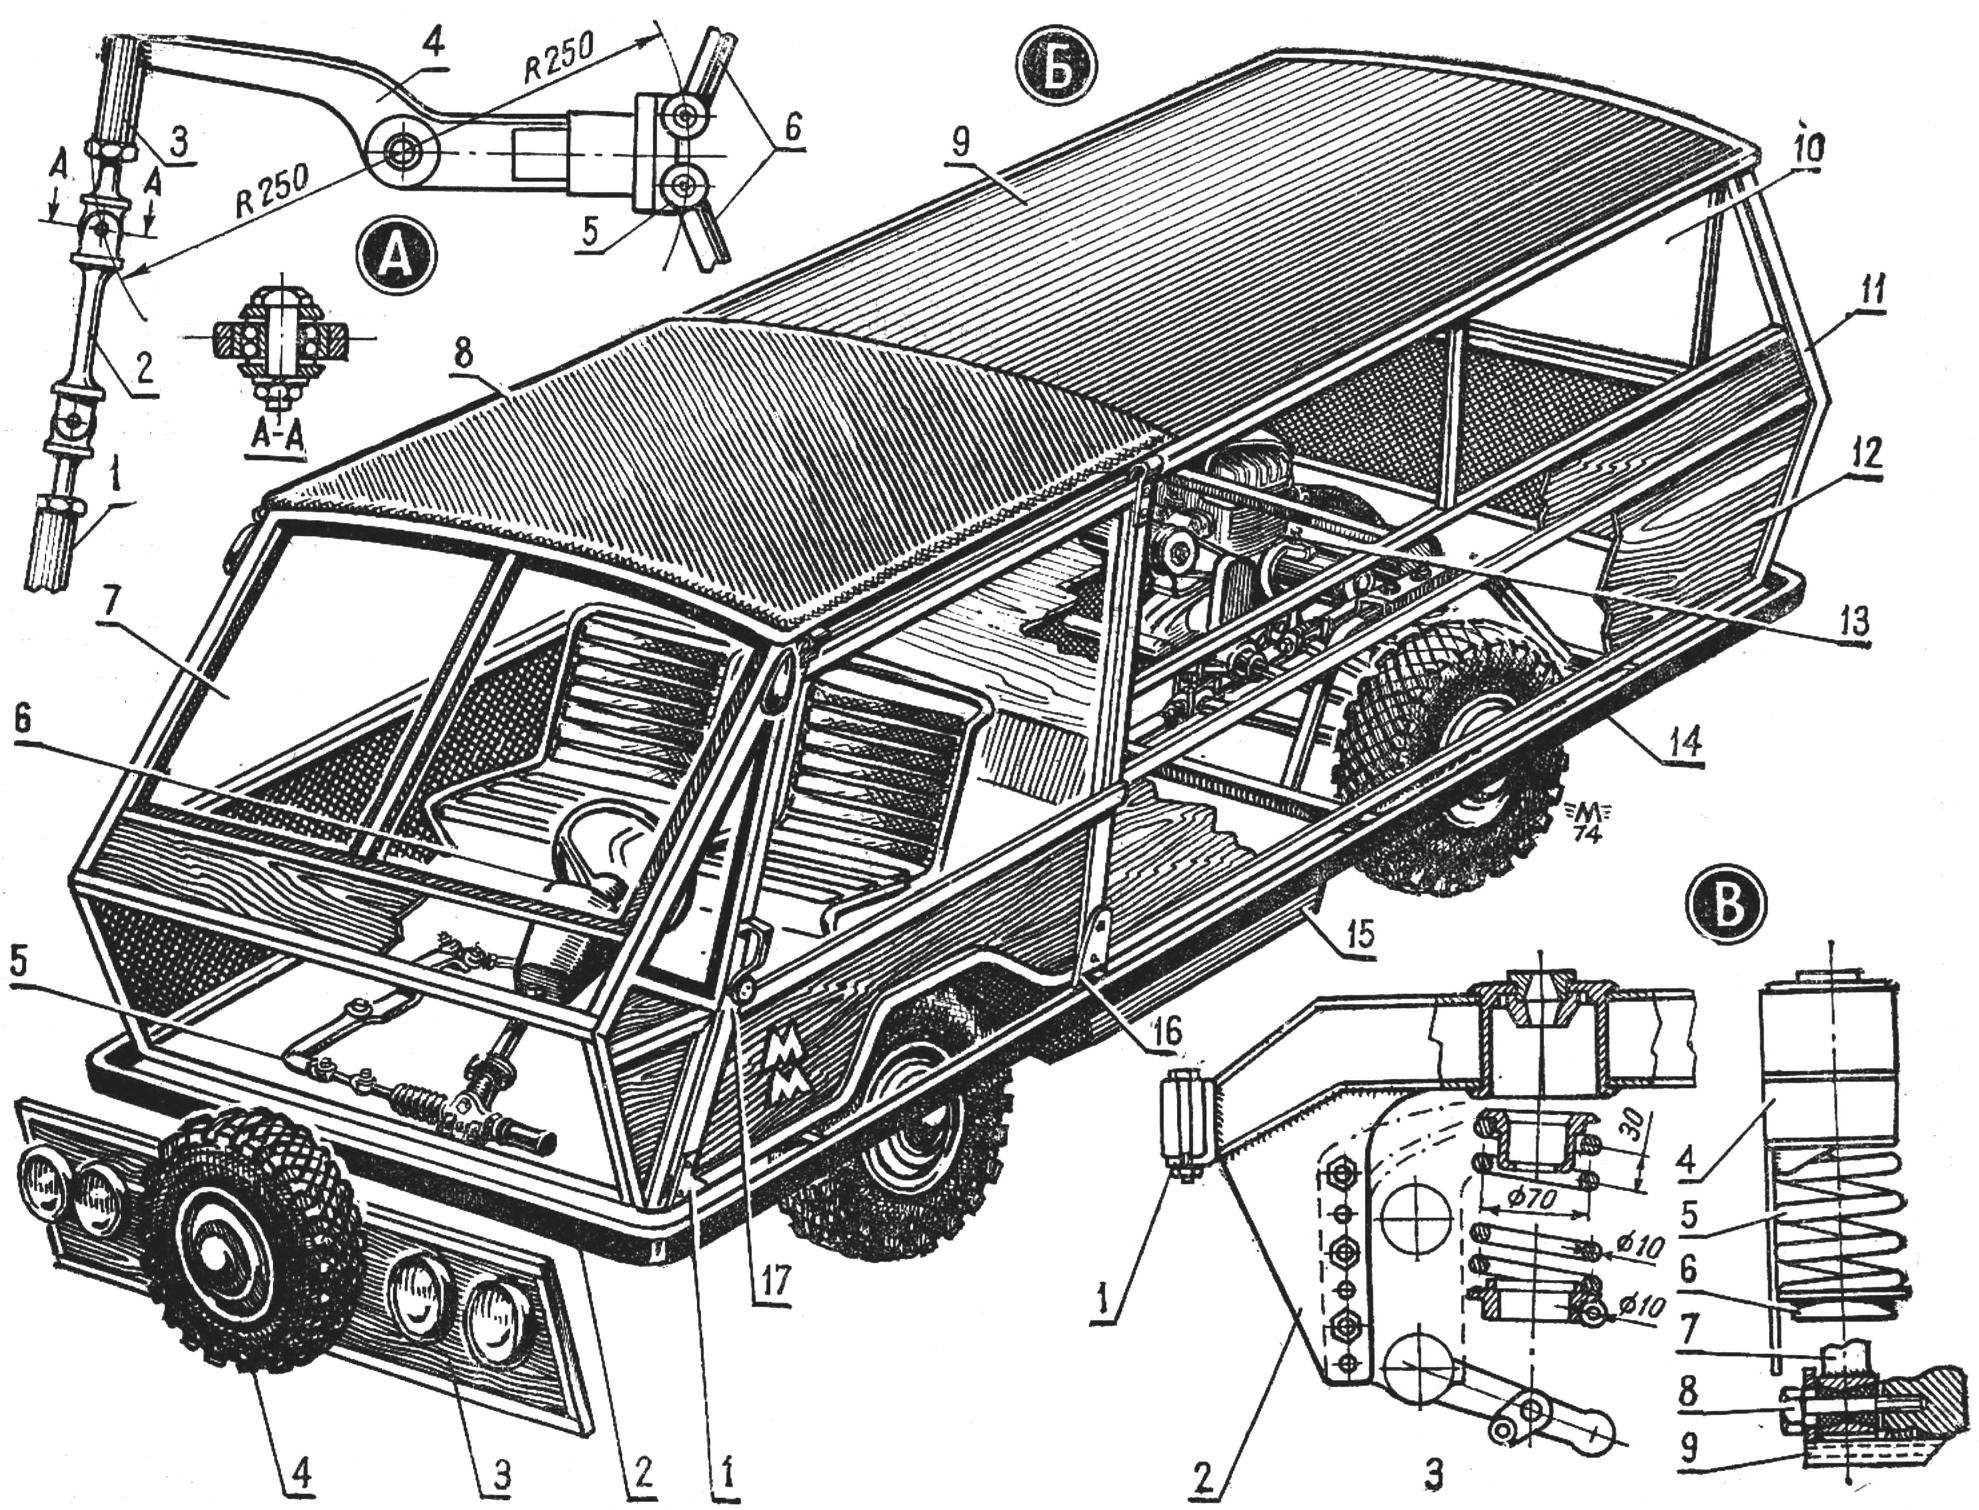 Fig. 1. The layout of the micro-car, only